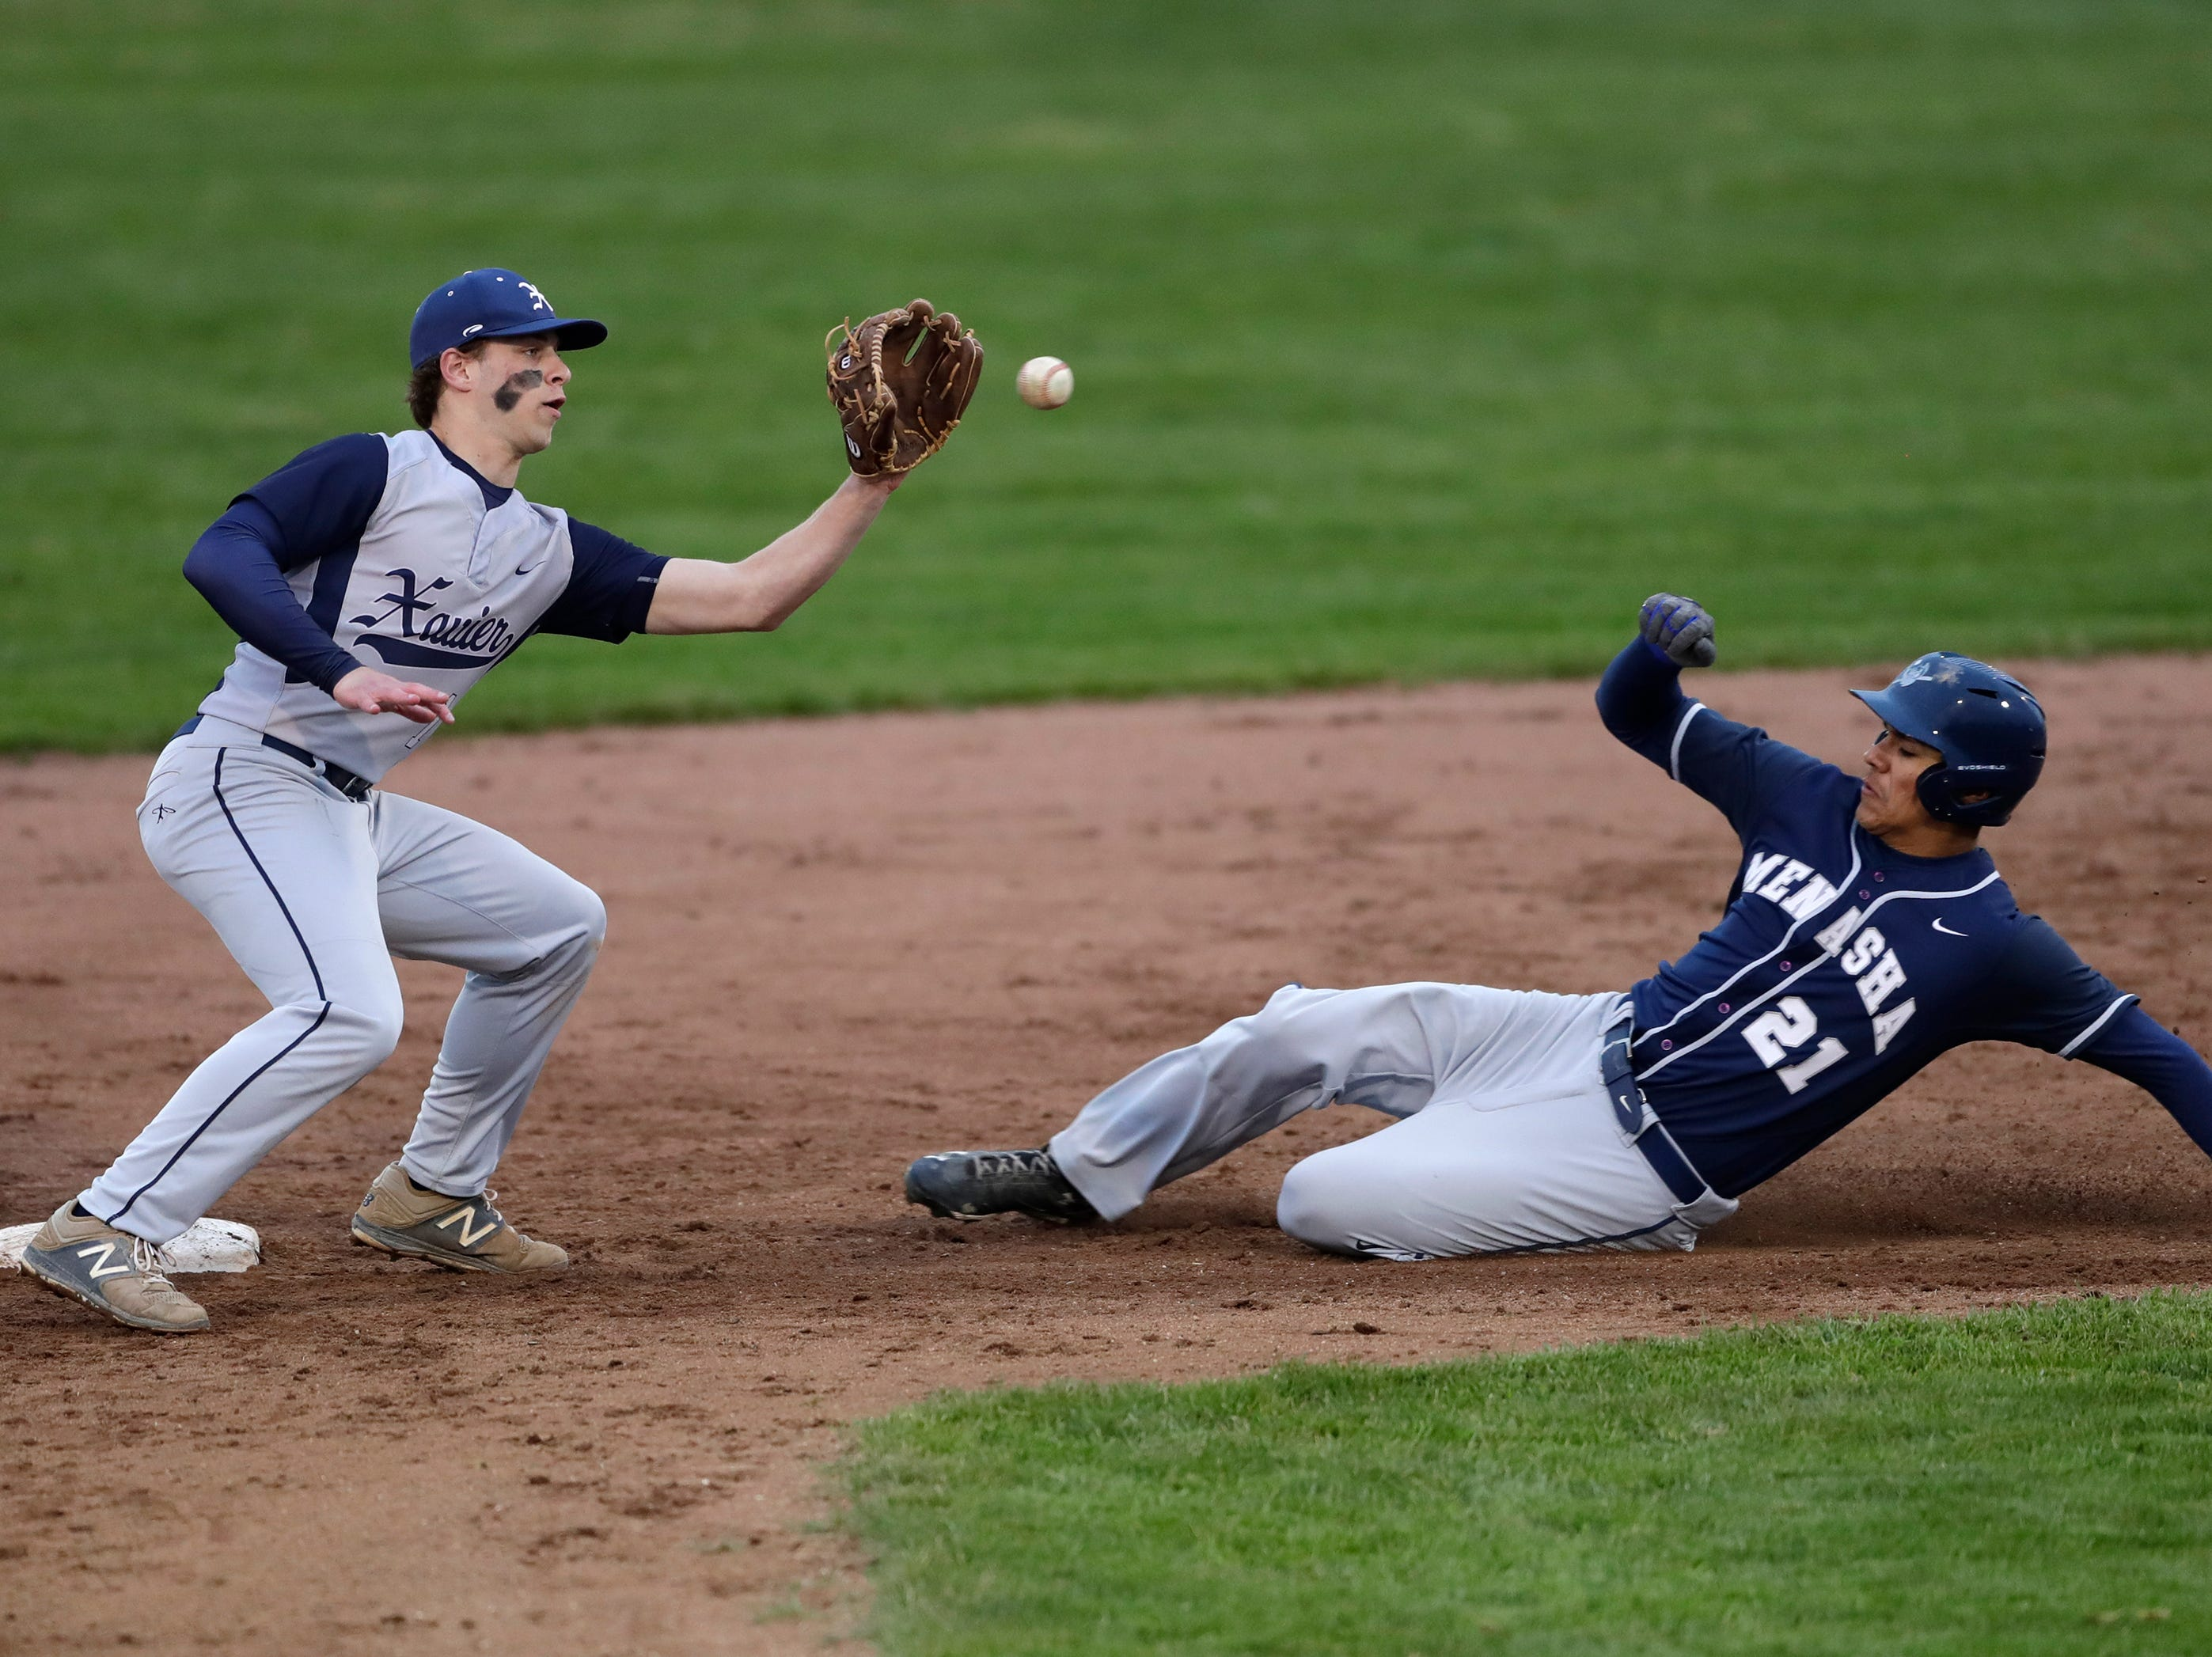 Xavier High School's TJ Van Eperen (1) is late on the tag as Menasha High School's Sam Wussow (21) is safe at second base during their boys baseball game Thursday, May 2, 2019, at Don Hawkins Field in Grand Chute, Wis. Dan Powers/USA TODAY NETWORK-Wisconsin